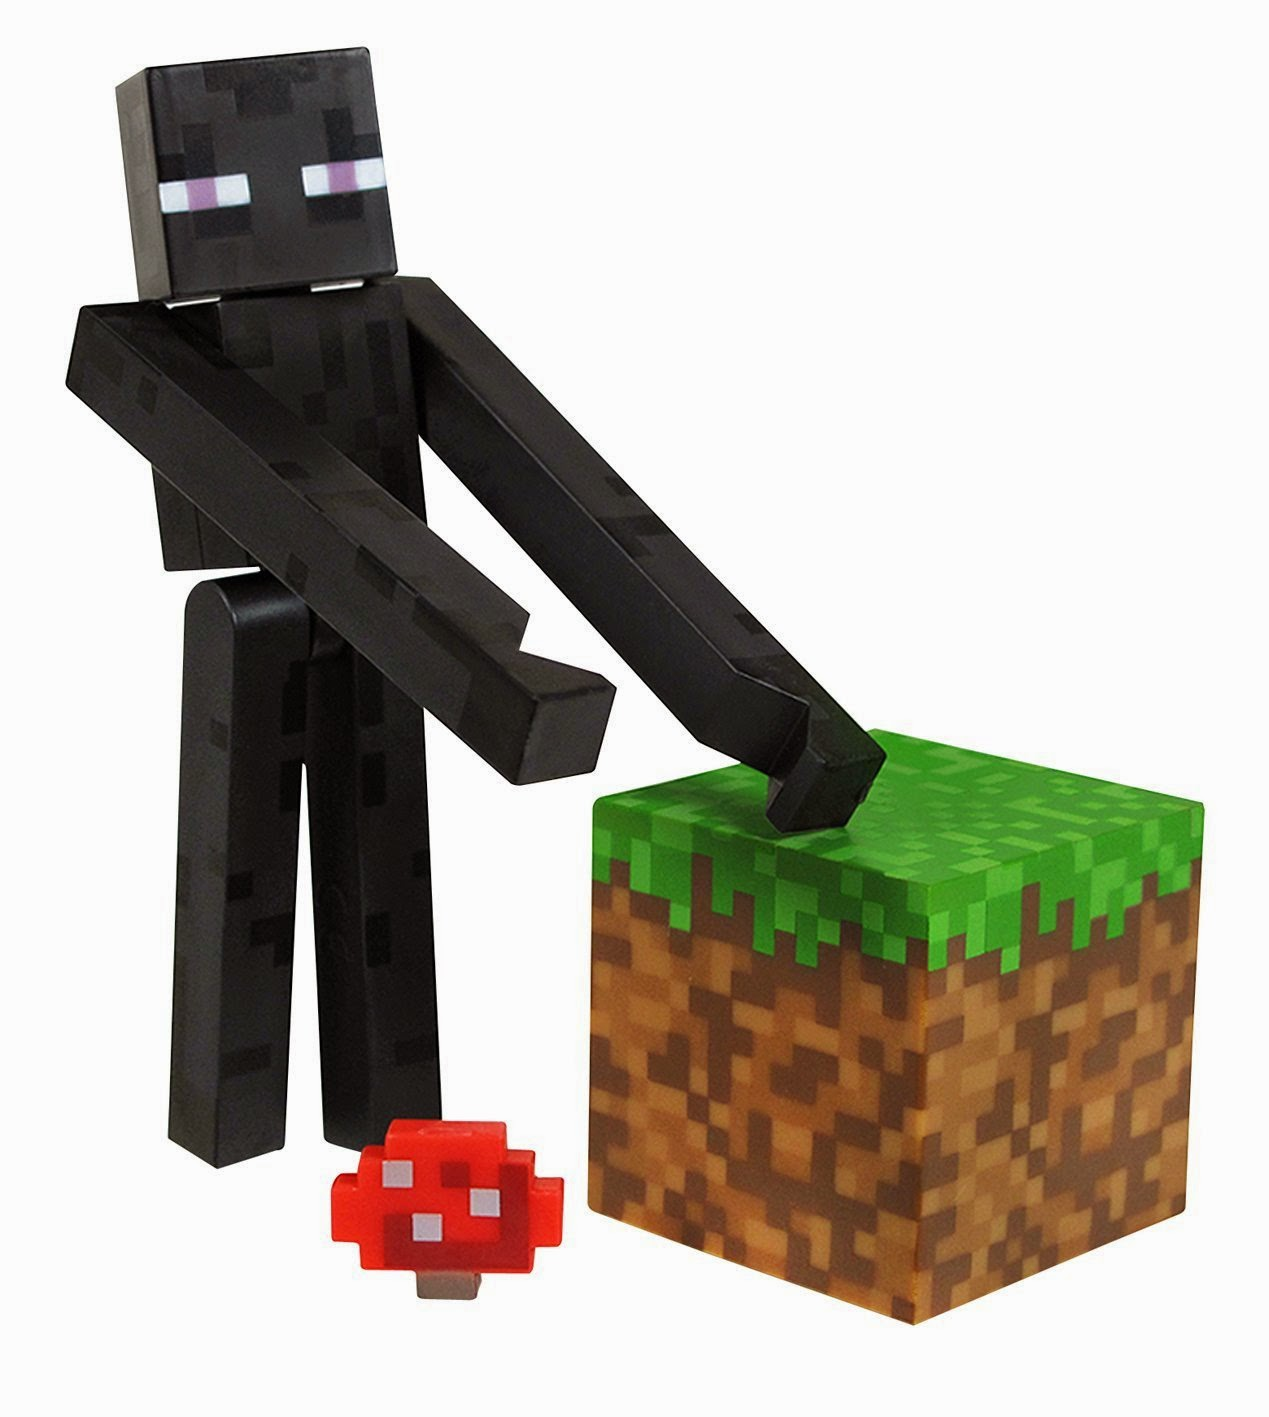 TOYS : JUGUETES - MINECRAFT  Overworld : Enderman | Muñeco | Figura   Minecraft Enderman 3 Inch Figure with Grass Block  Series #1 Minecraft action figures  Producto Oficial | Jazwares 16500 | A partir de 6 años